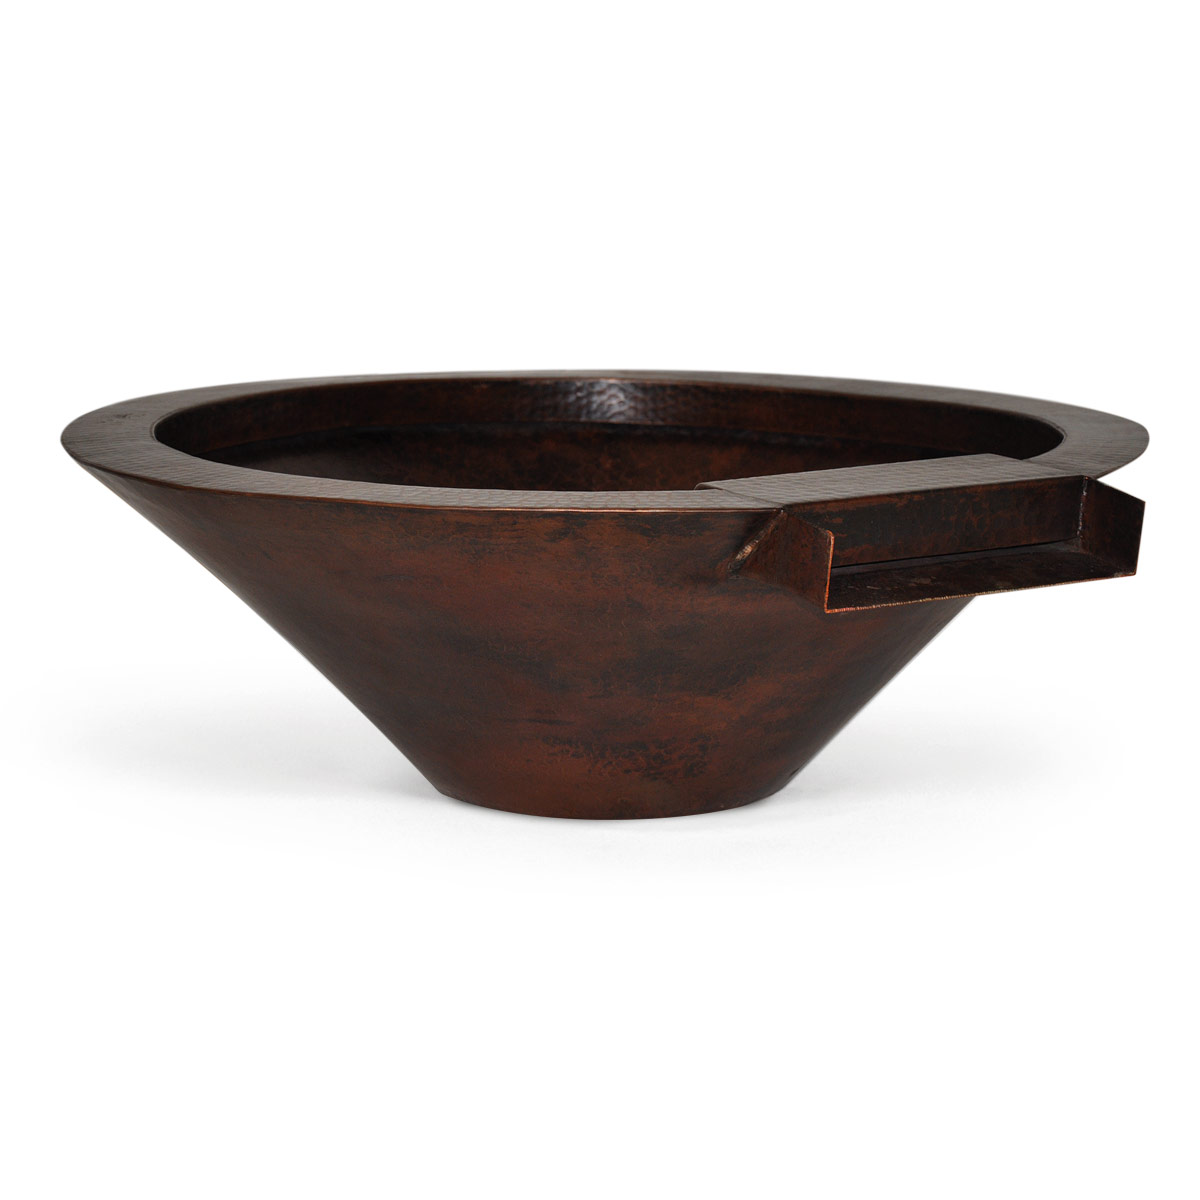 Essex - fire & water bowl (metal)